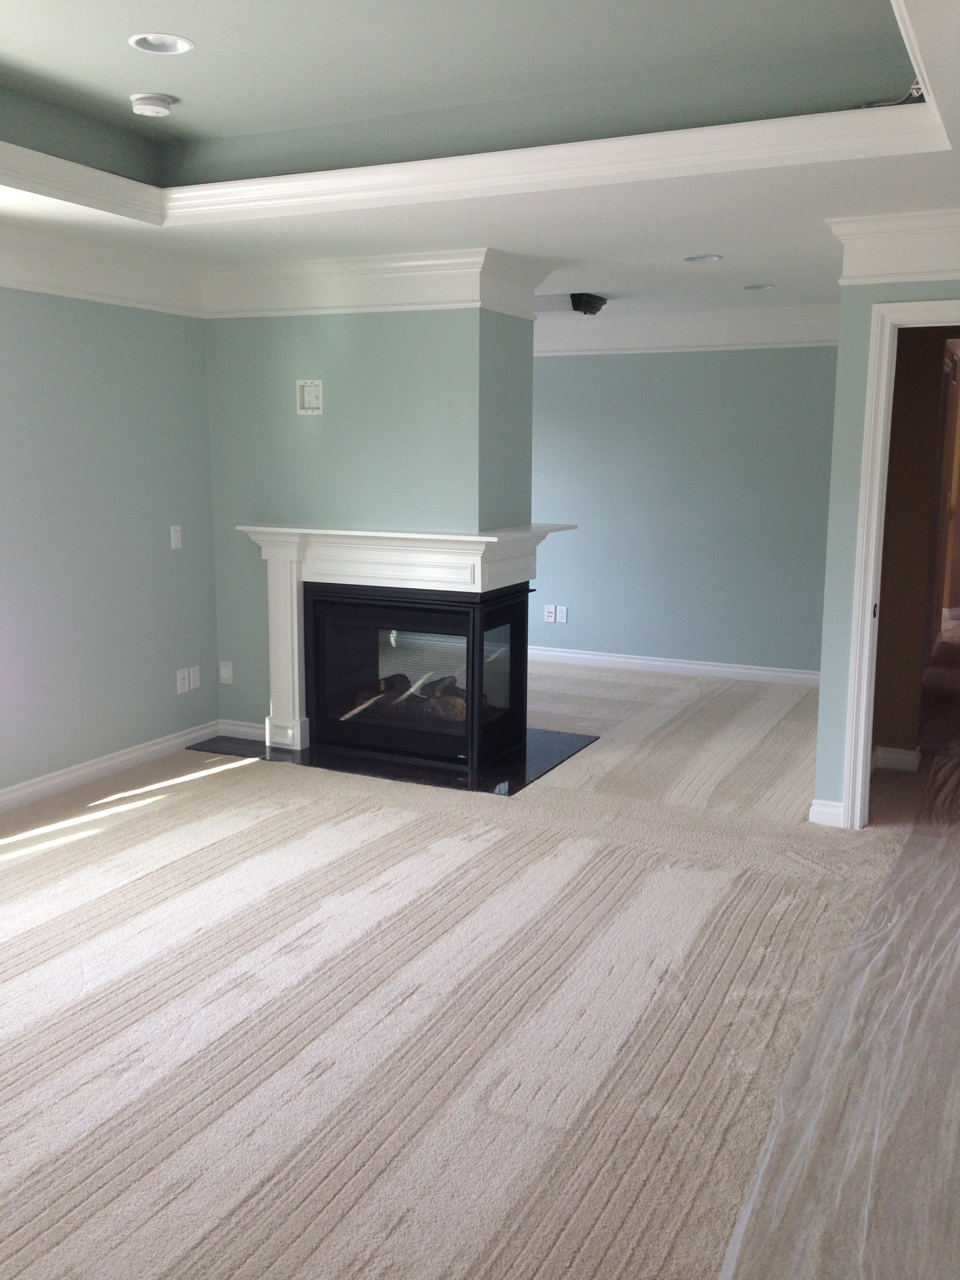 Building relationships one custom home at a time. General Contracting in the Fenton, South Lyon, Novi, Canton, Clarkston, Orion, and other Southwest Michigan areas custom master bedroom